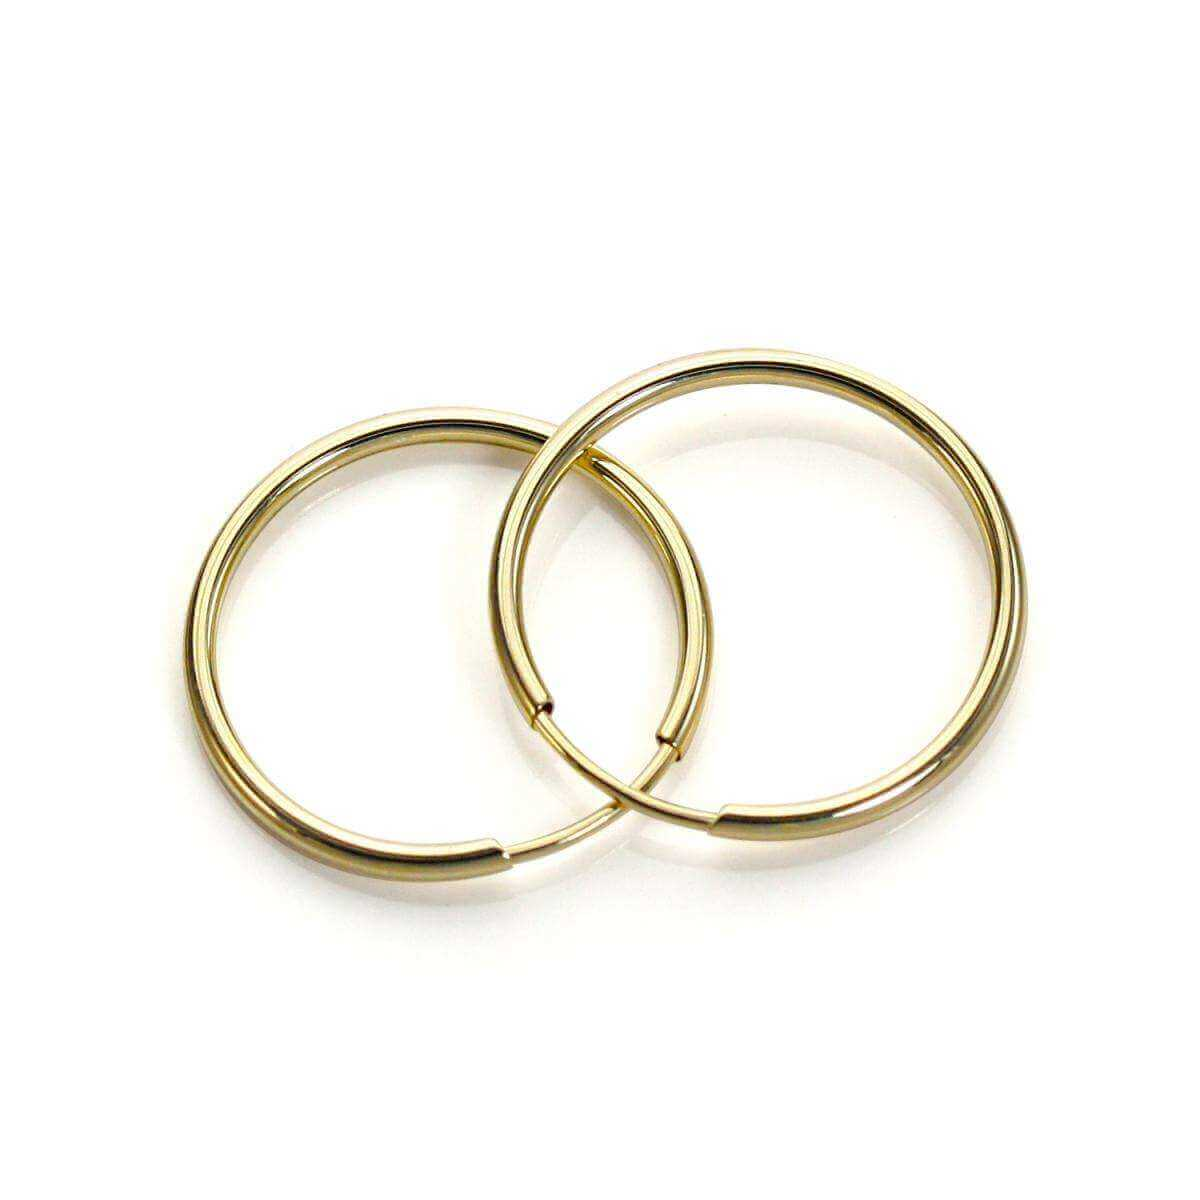 16 hoop earrings 9ct yellow gold plain 16mm hoop earrings jewellerybox co uk 535